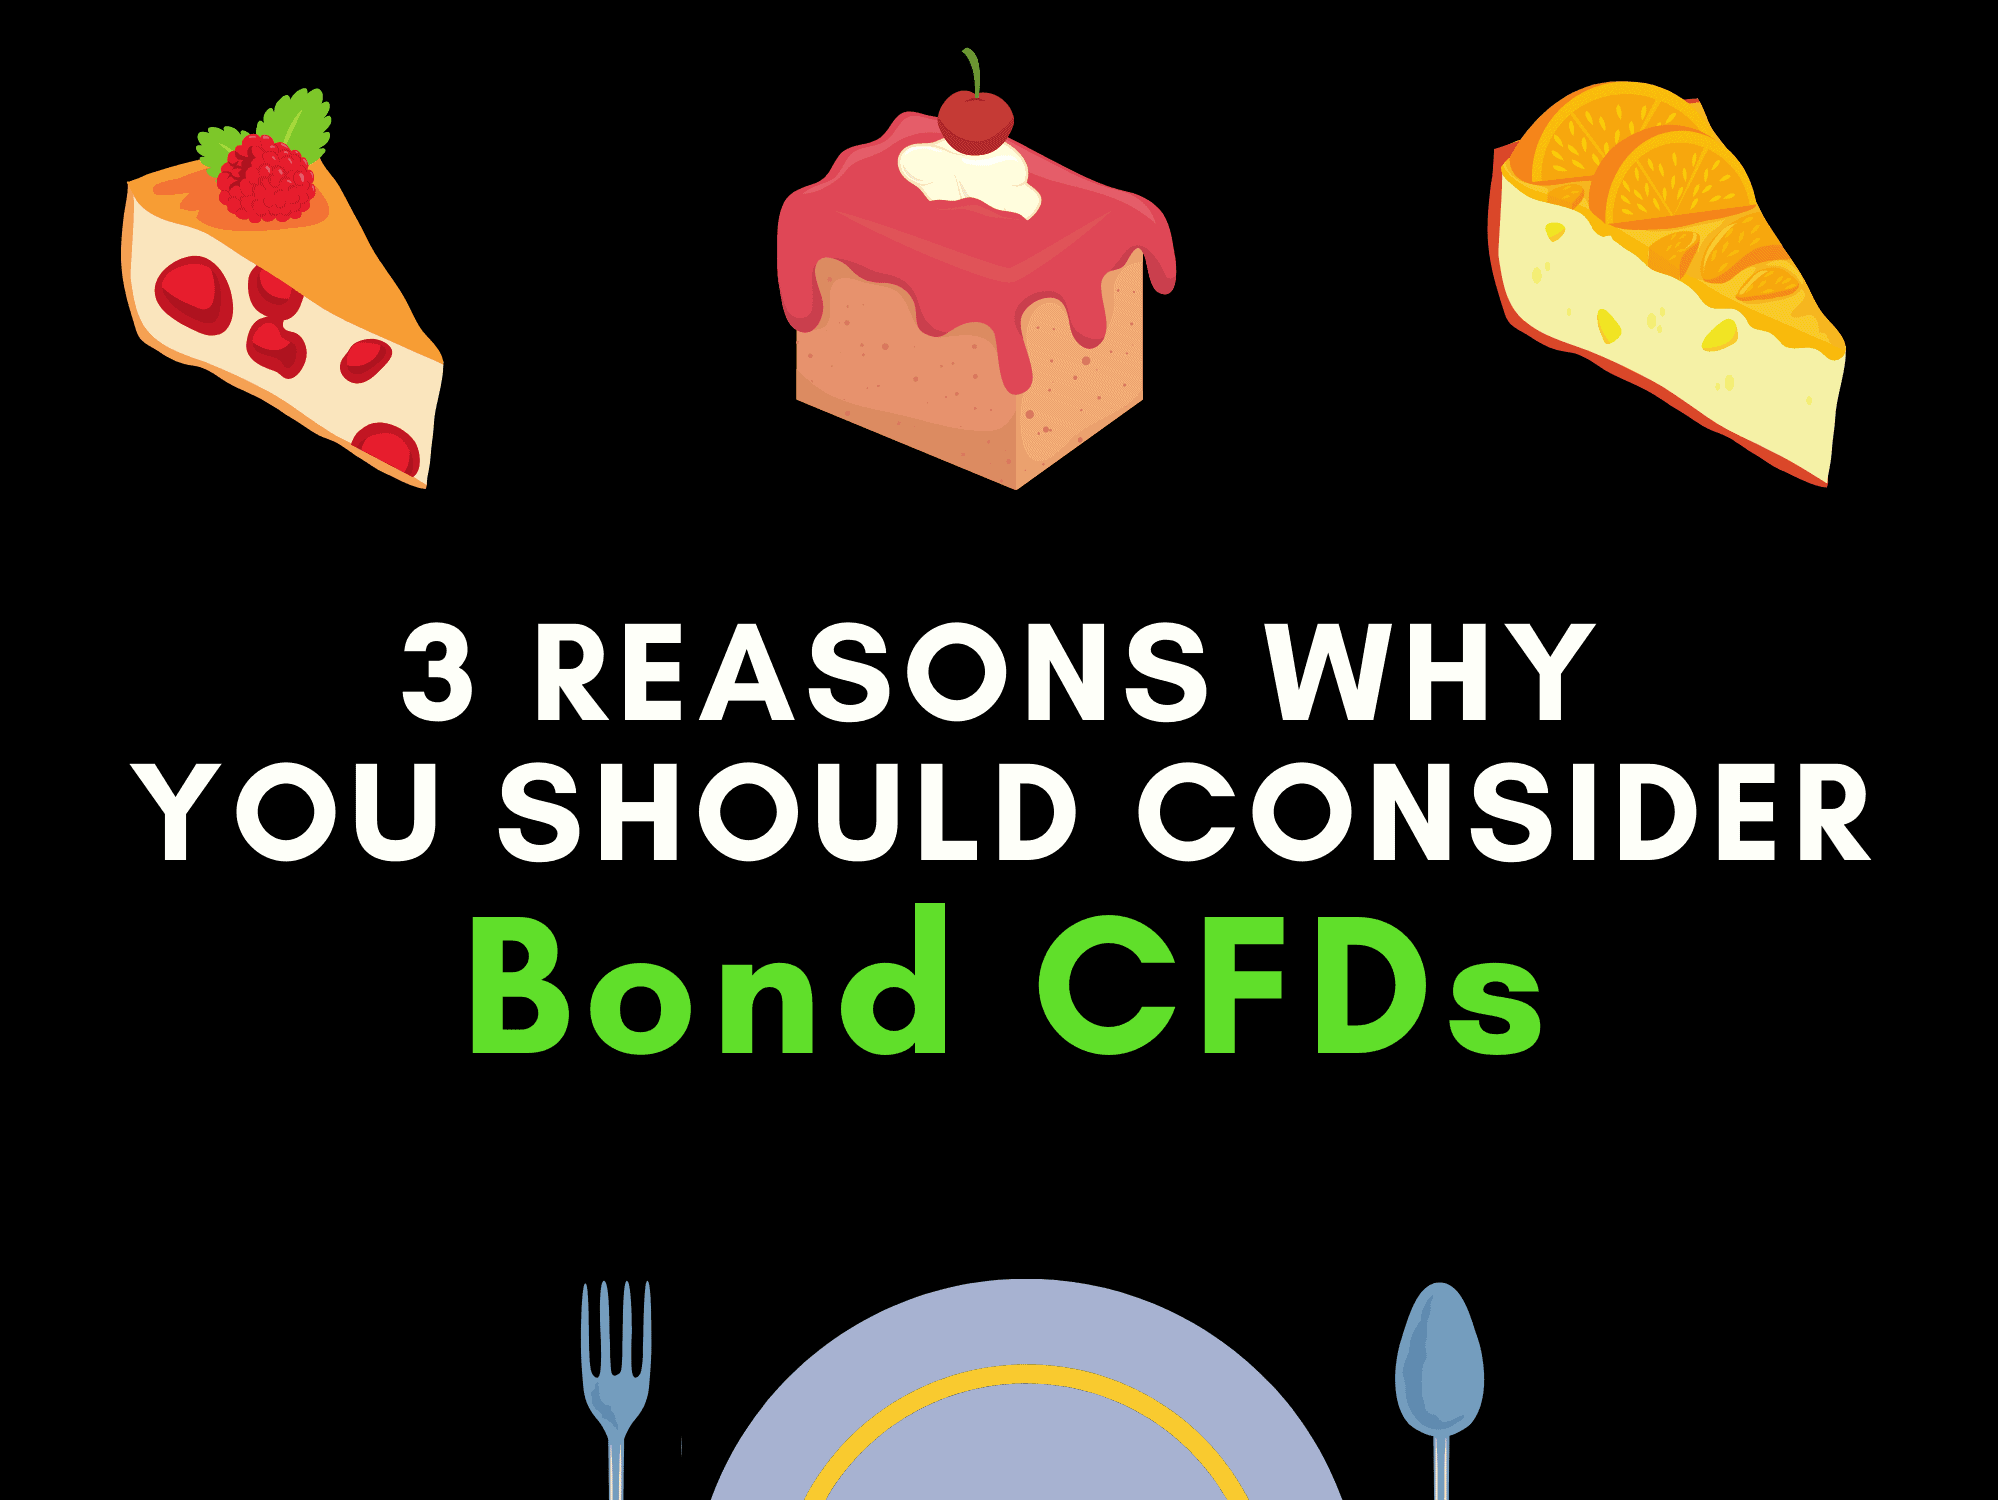 Bond CFDs: 3 Reasons You Should Consider Them